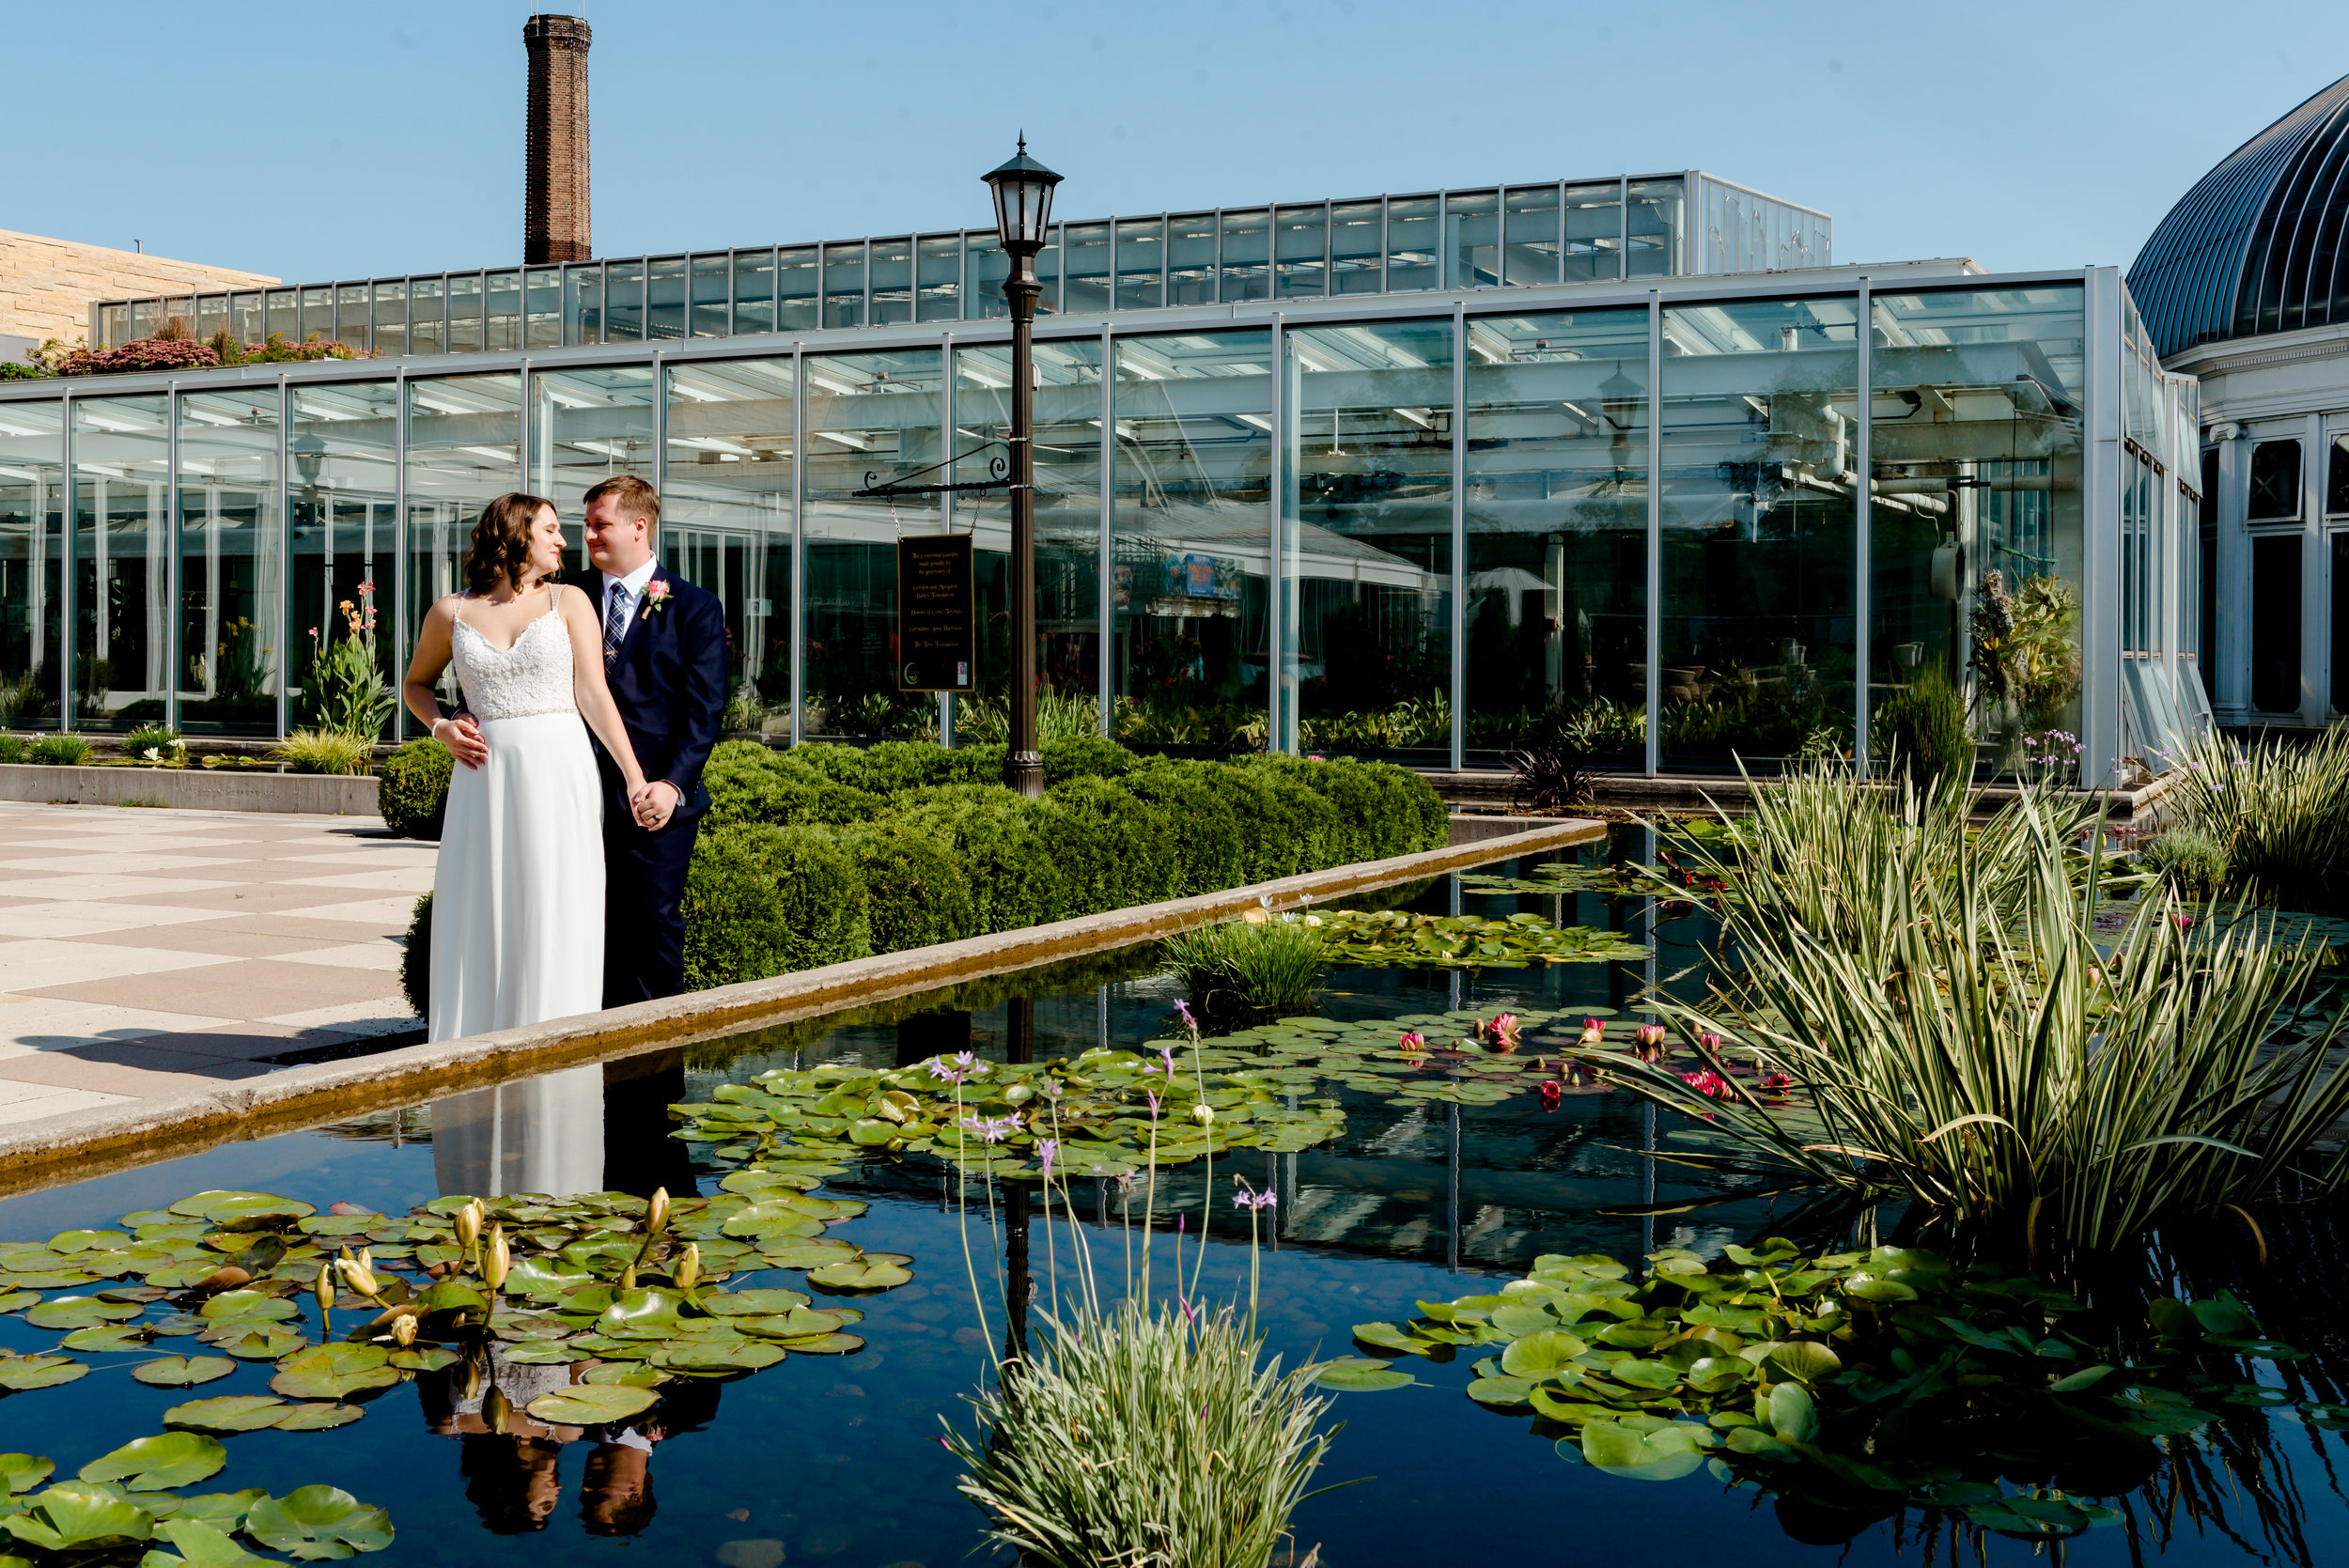 Como Zoo Wedding - Bride and Groom Outside Marjorie McNeely Conservatory after morning wedding - Twin Cities Elopement Photographer